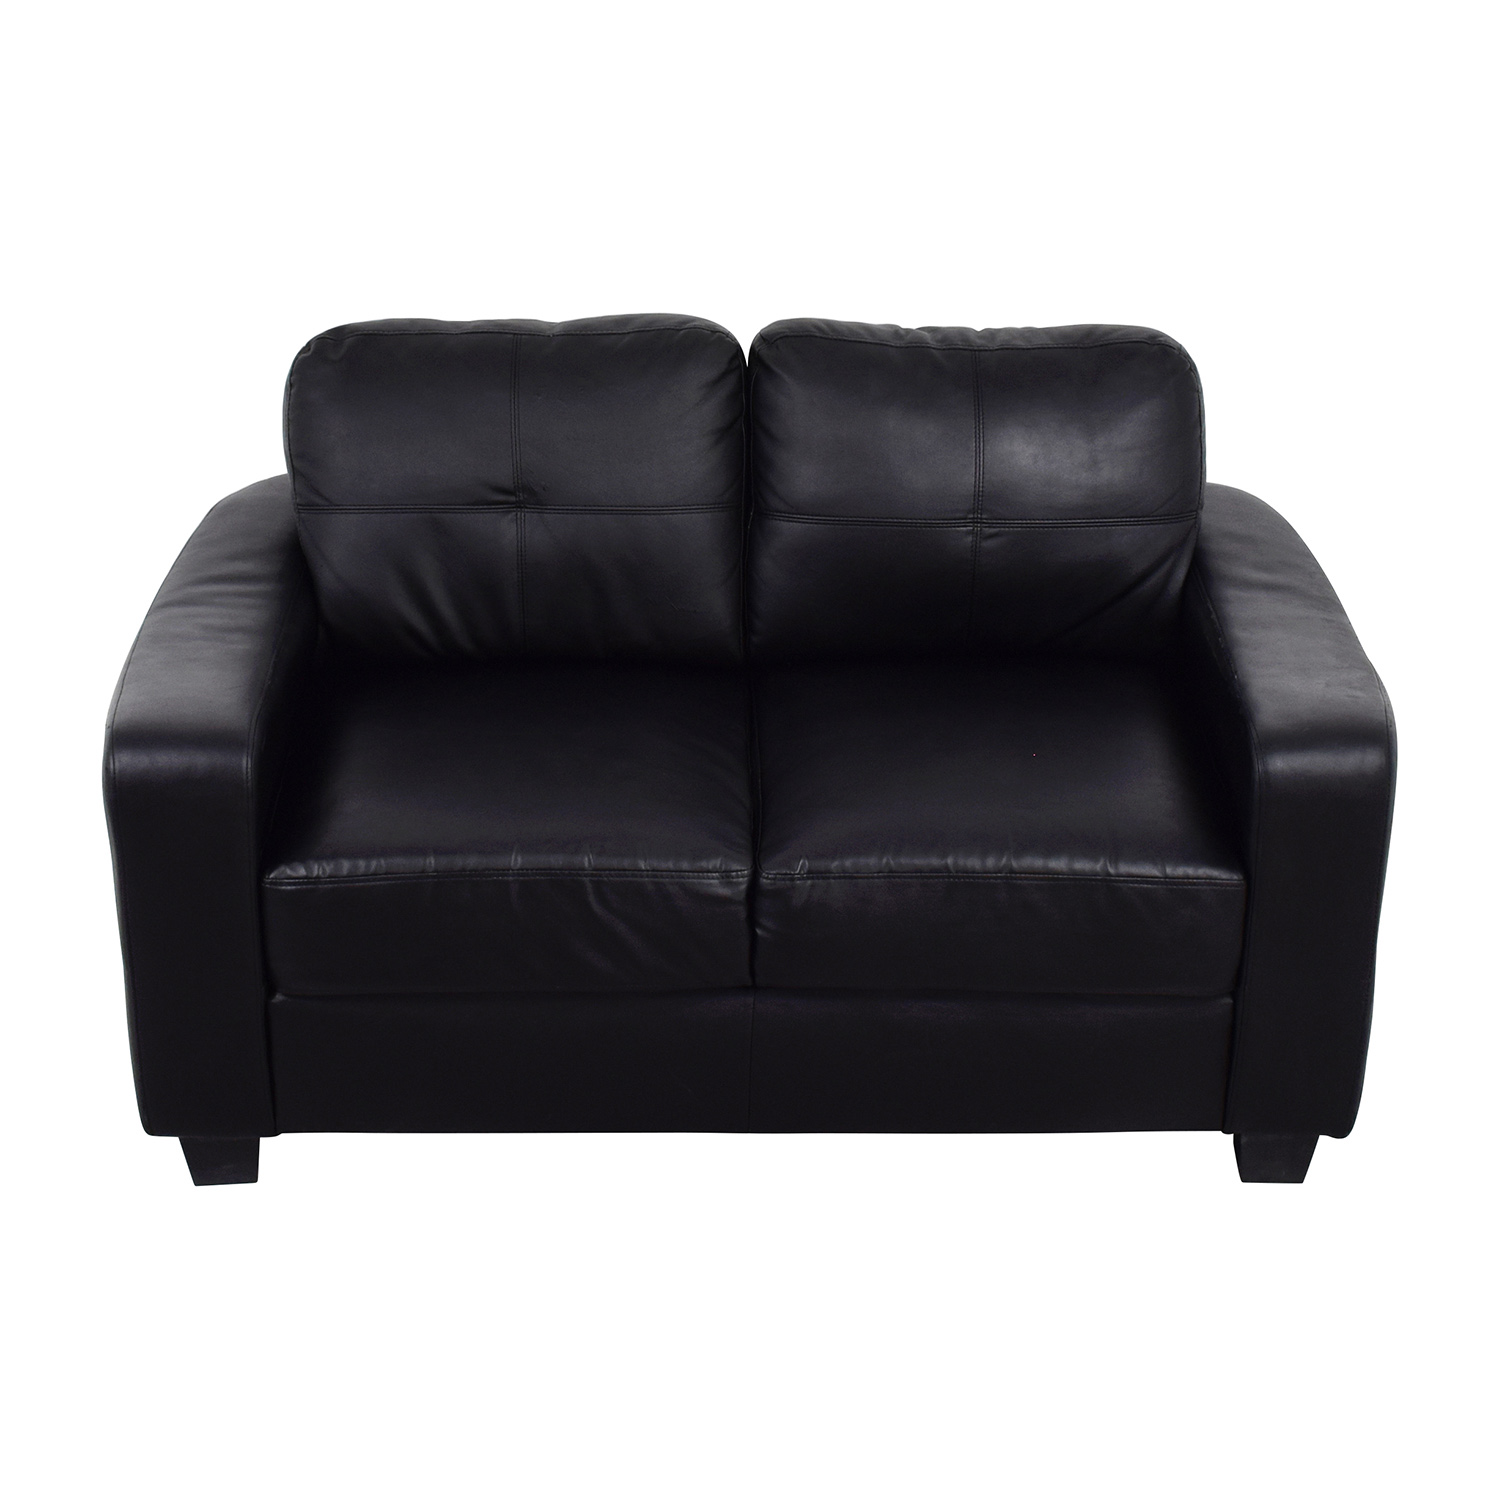 79 Off Black Bonded Leather Loveseat Sofas